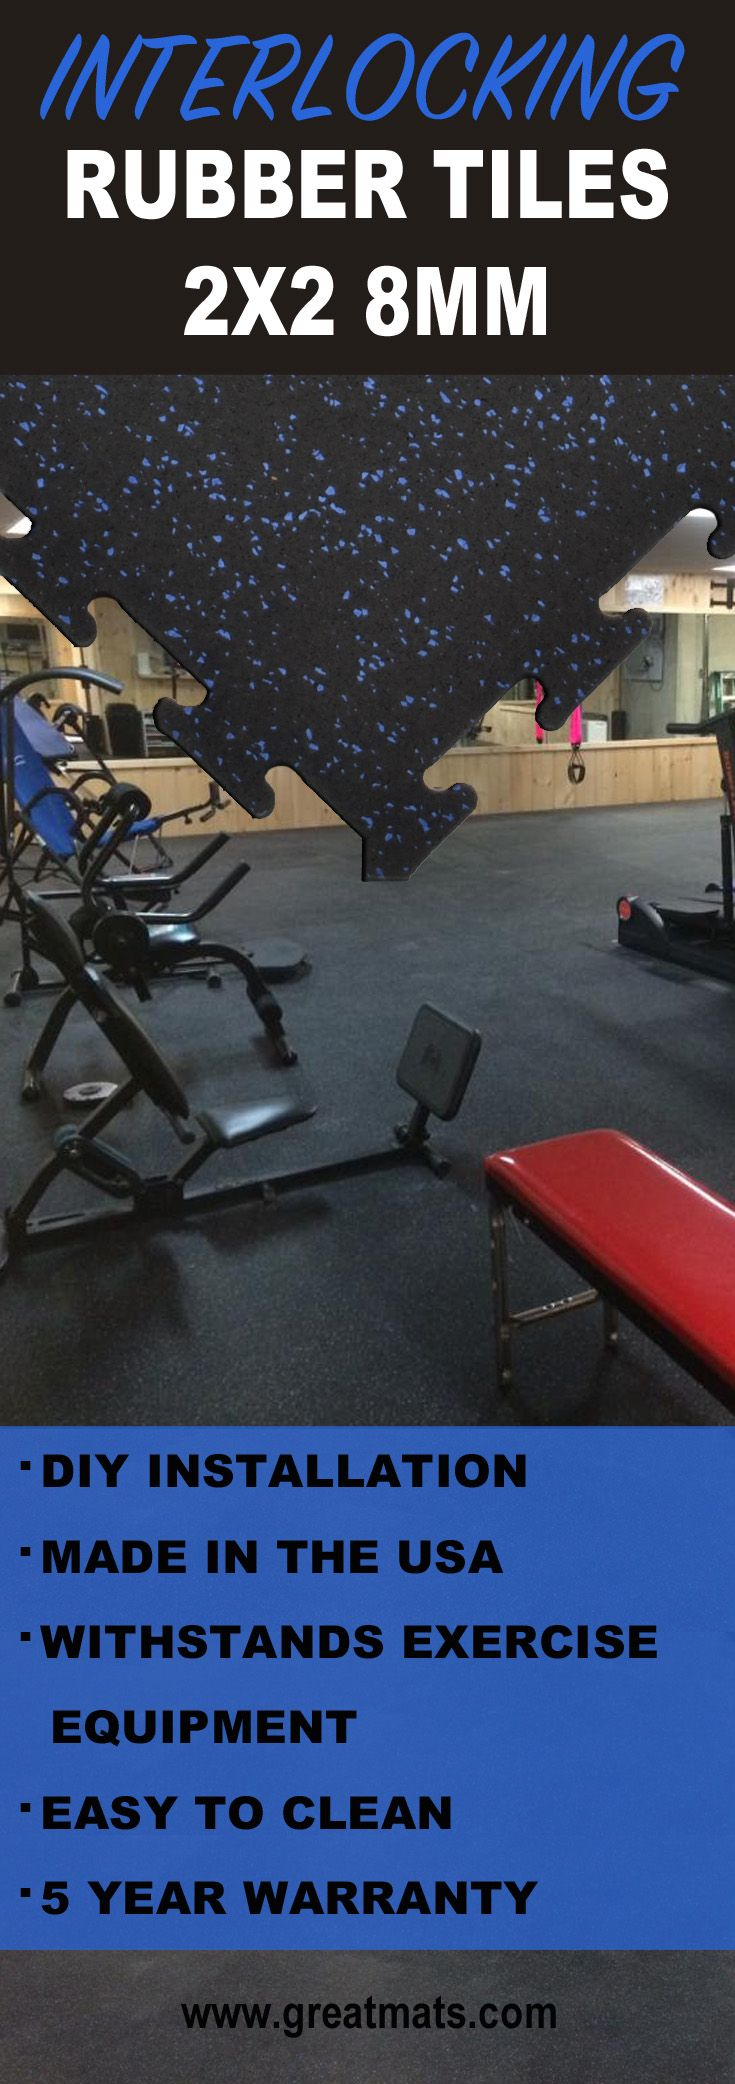 Rubber mats gym interlocking - Discover What Makes 2x2 Foot By 8mm Thick Interlocking Rubber Tiles Perfect For Home Gyms